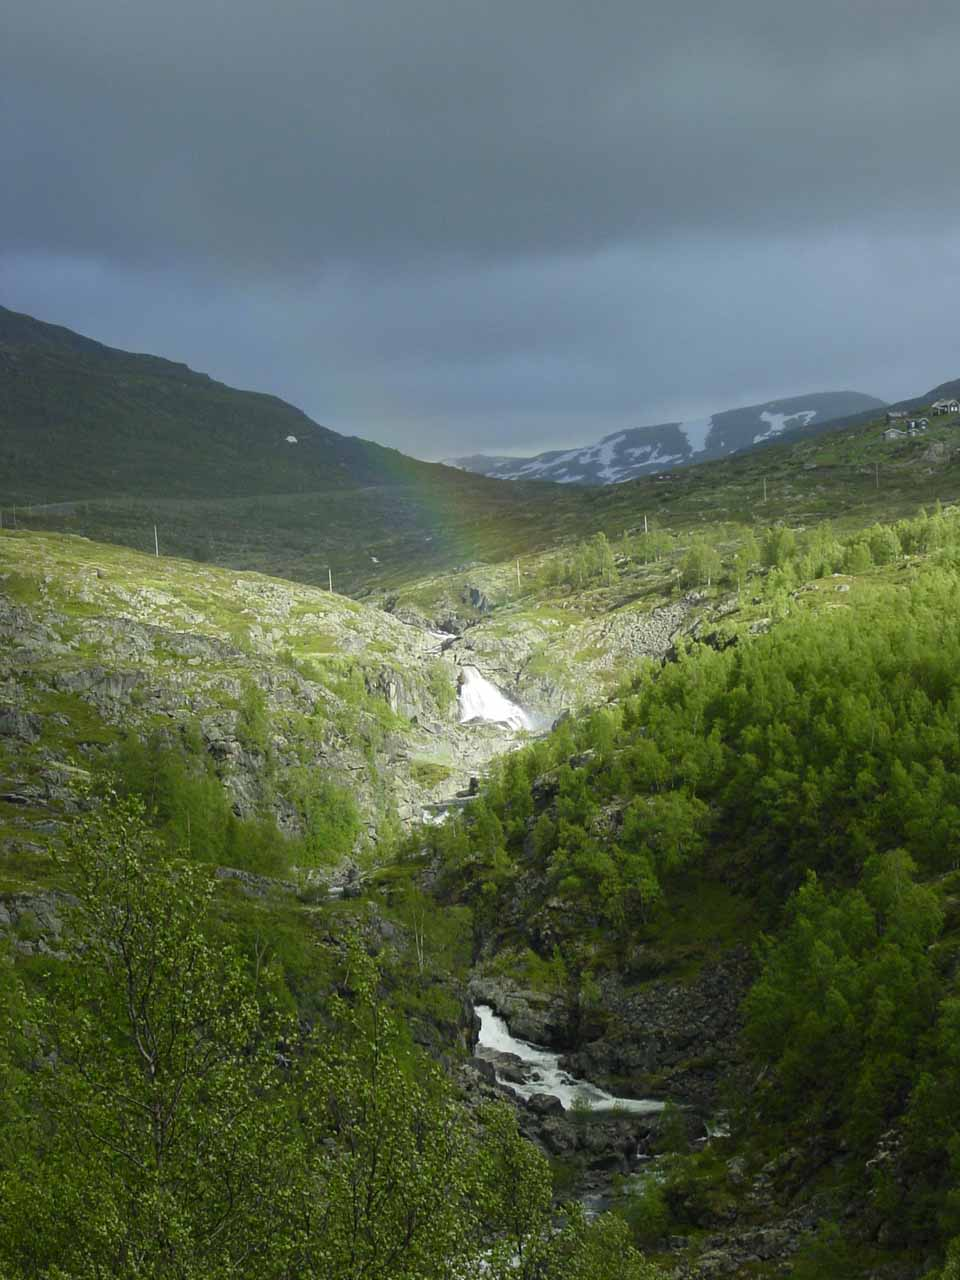 We noticed a rainbow arcing across this obscure pair of cascades while driving the Rv52 between Lærdal and Hemsedal